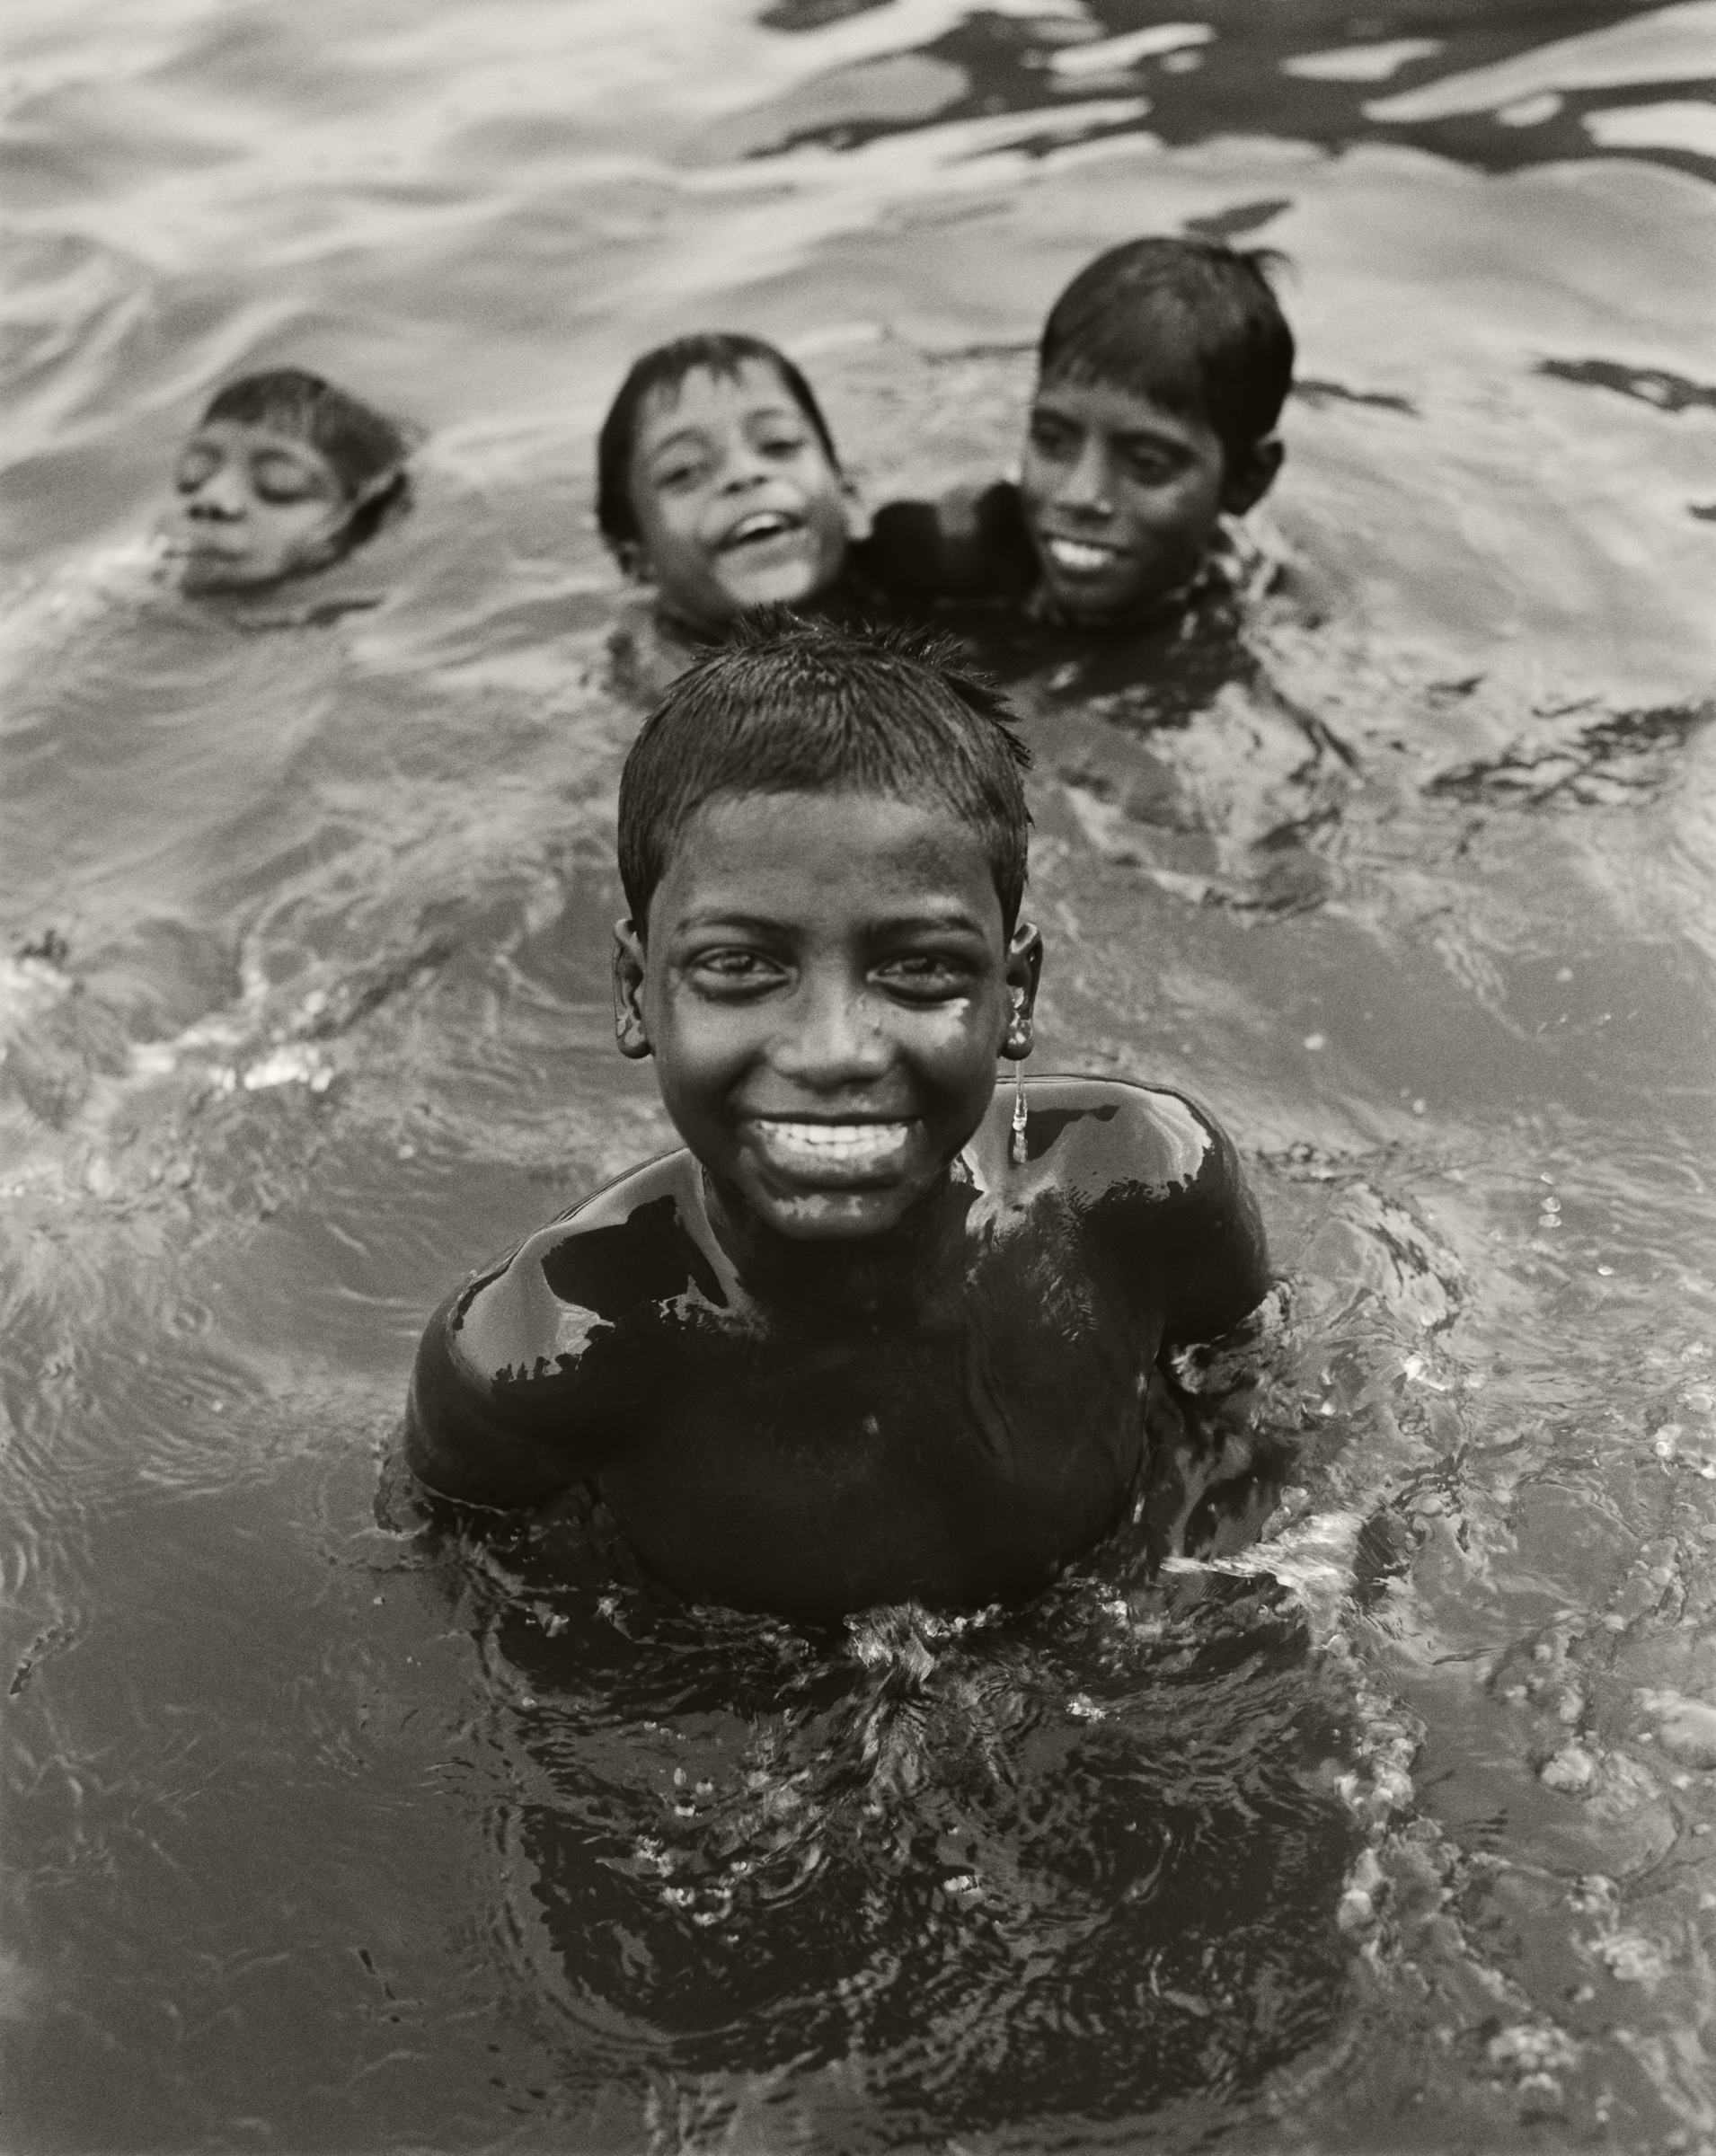 BOYS IN THE GANGES RIVER